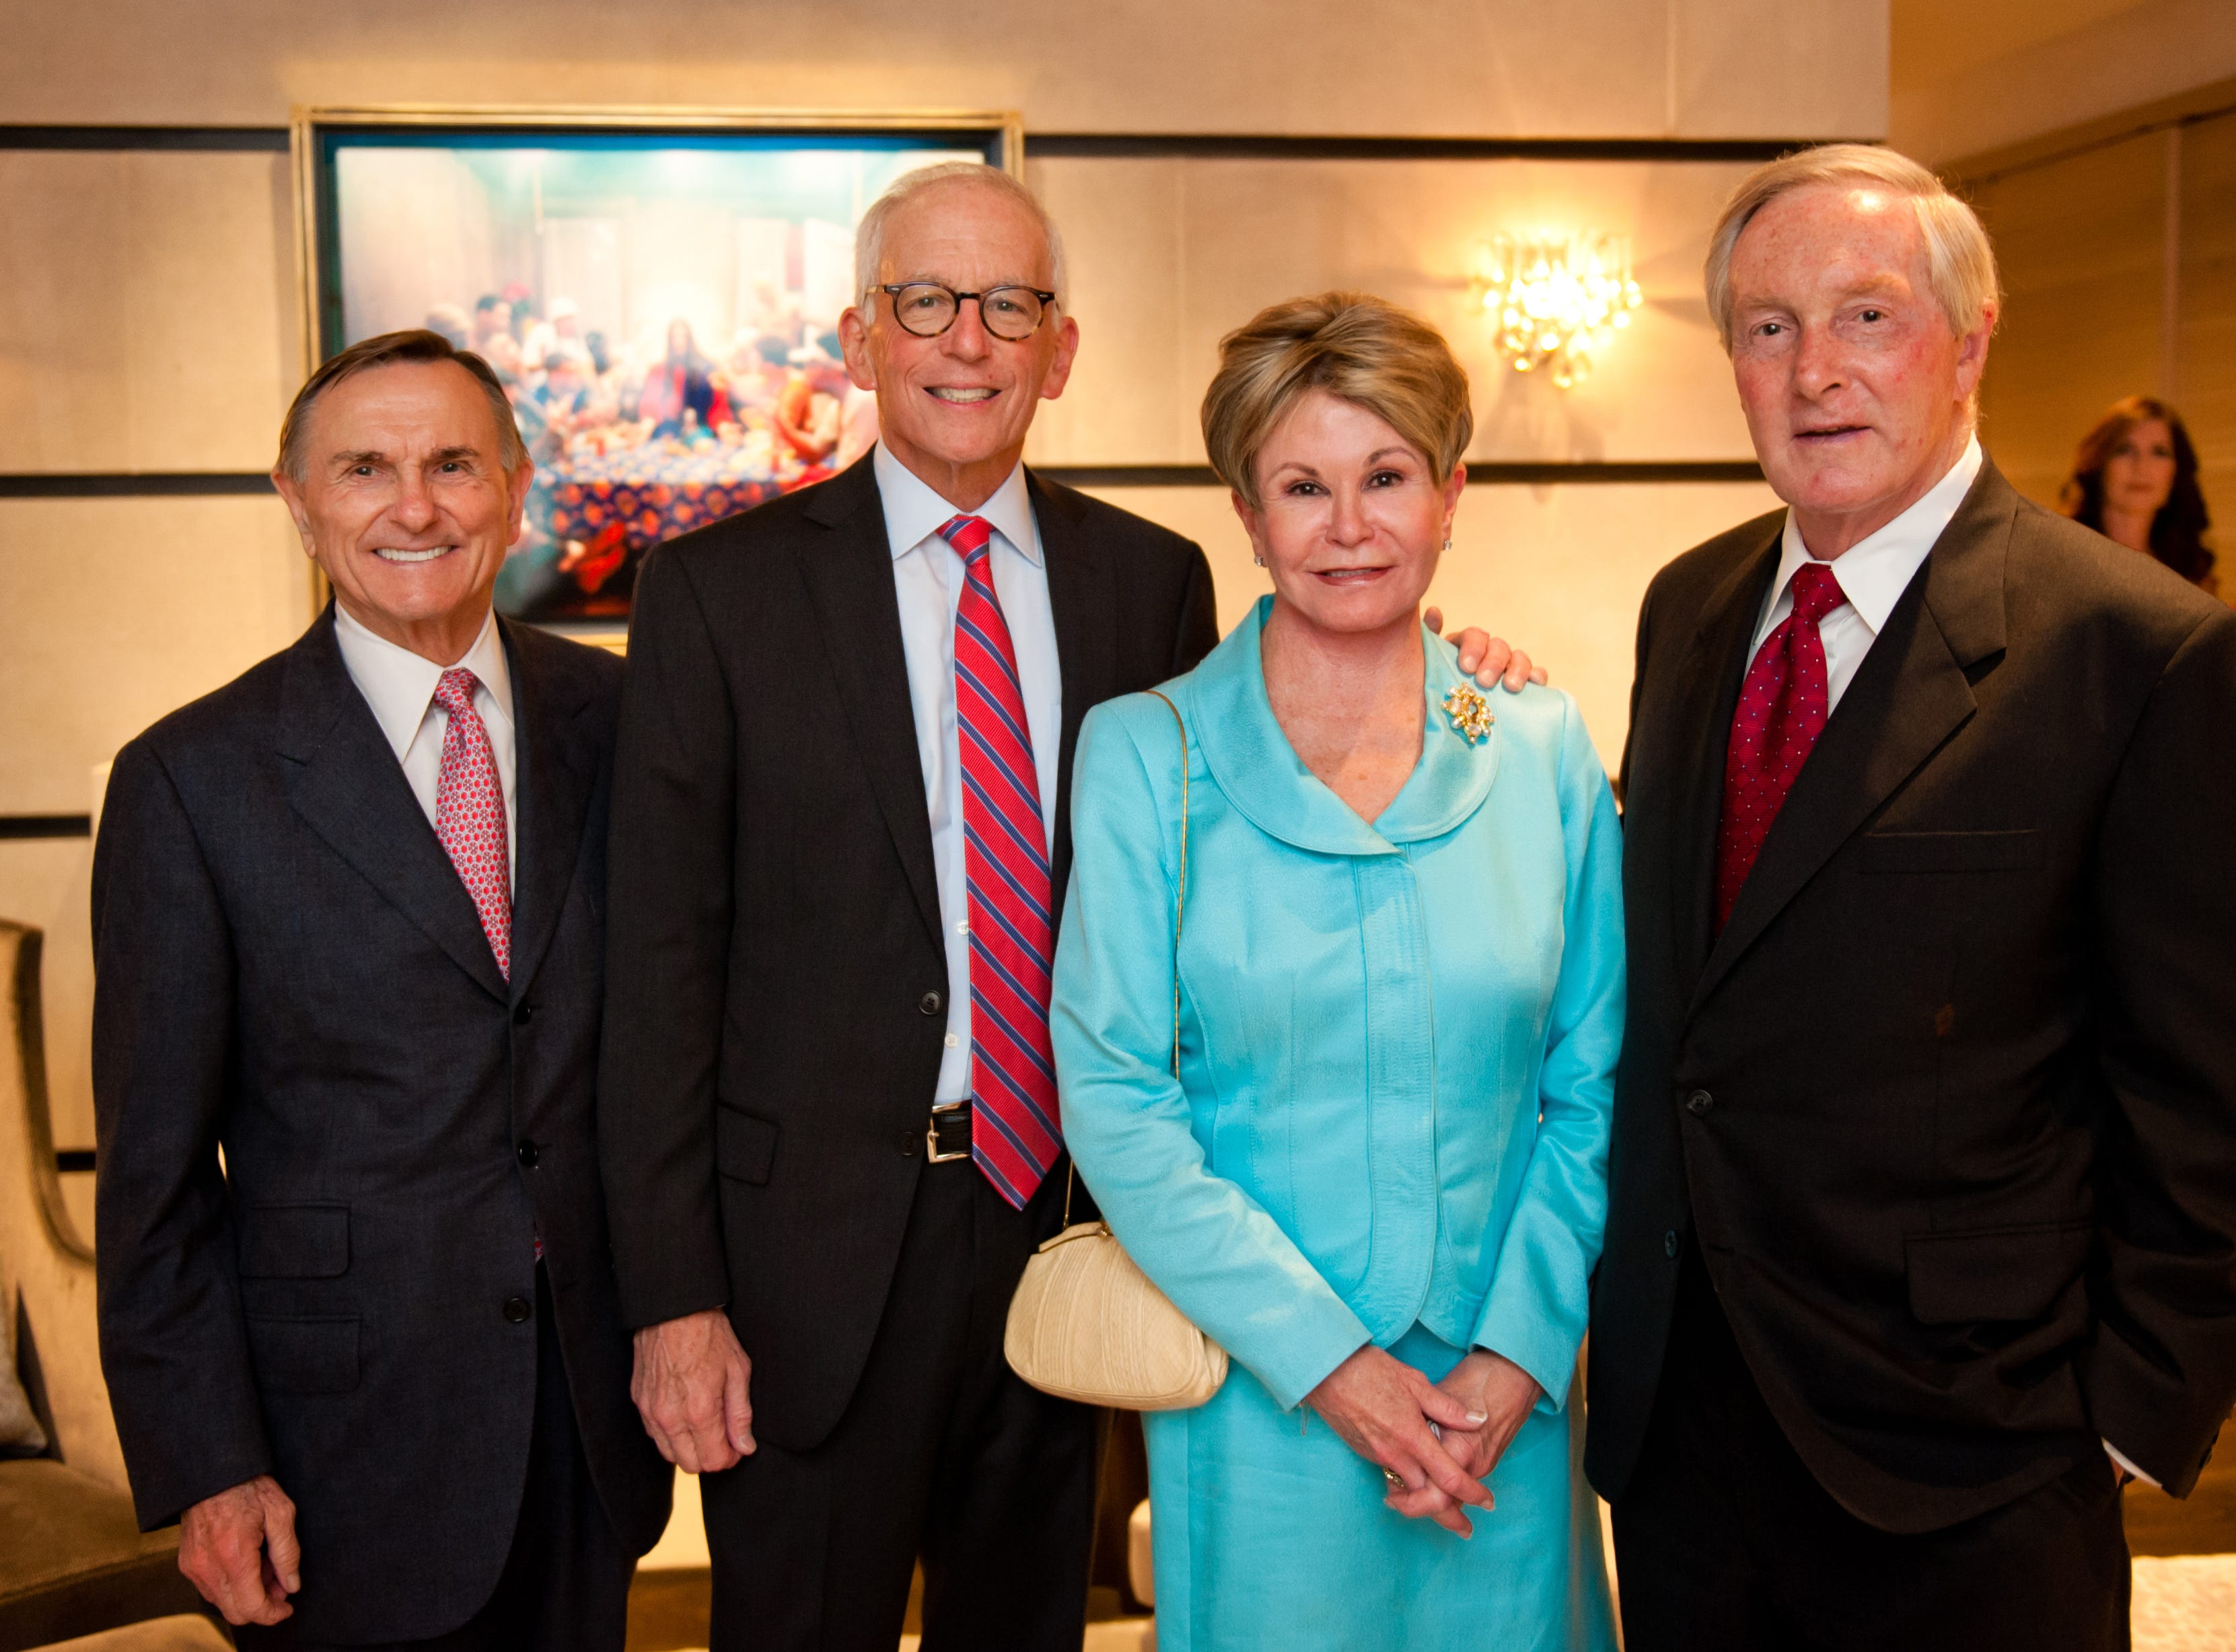 Ted Welch, left, Steve Riven, Colleen Conway Welch and Tommy Frist at the Frist Gala Patrons' Party held at the home of Jennifer and Billy Frist.